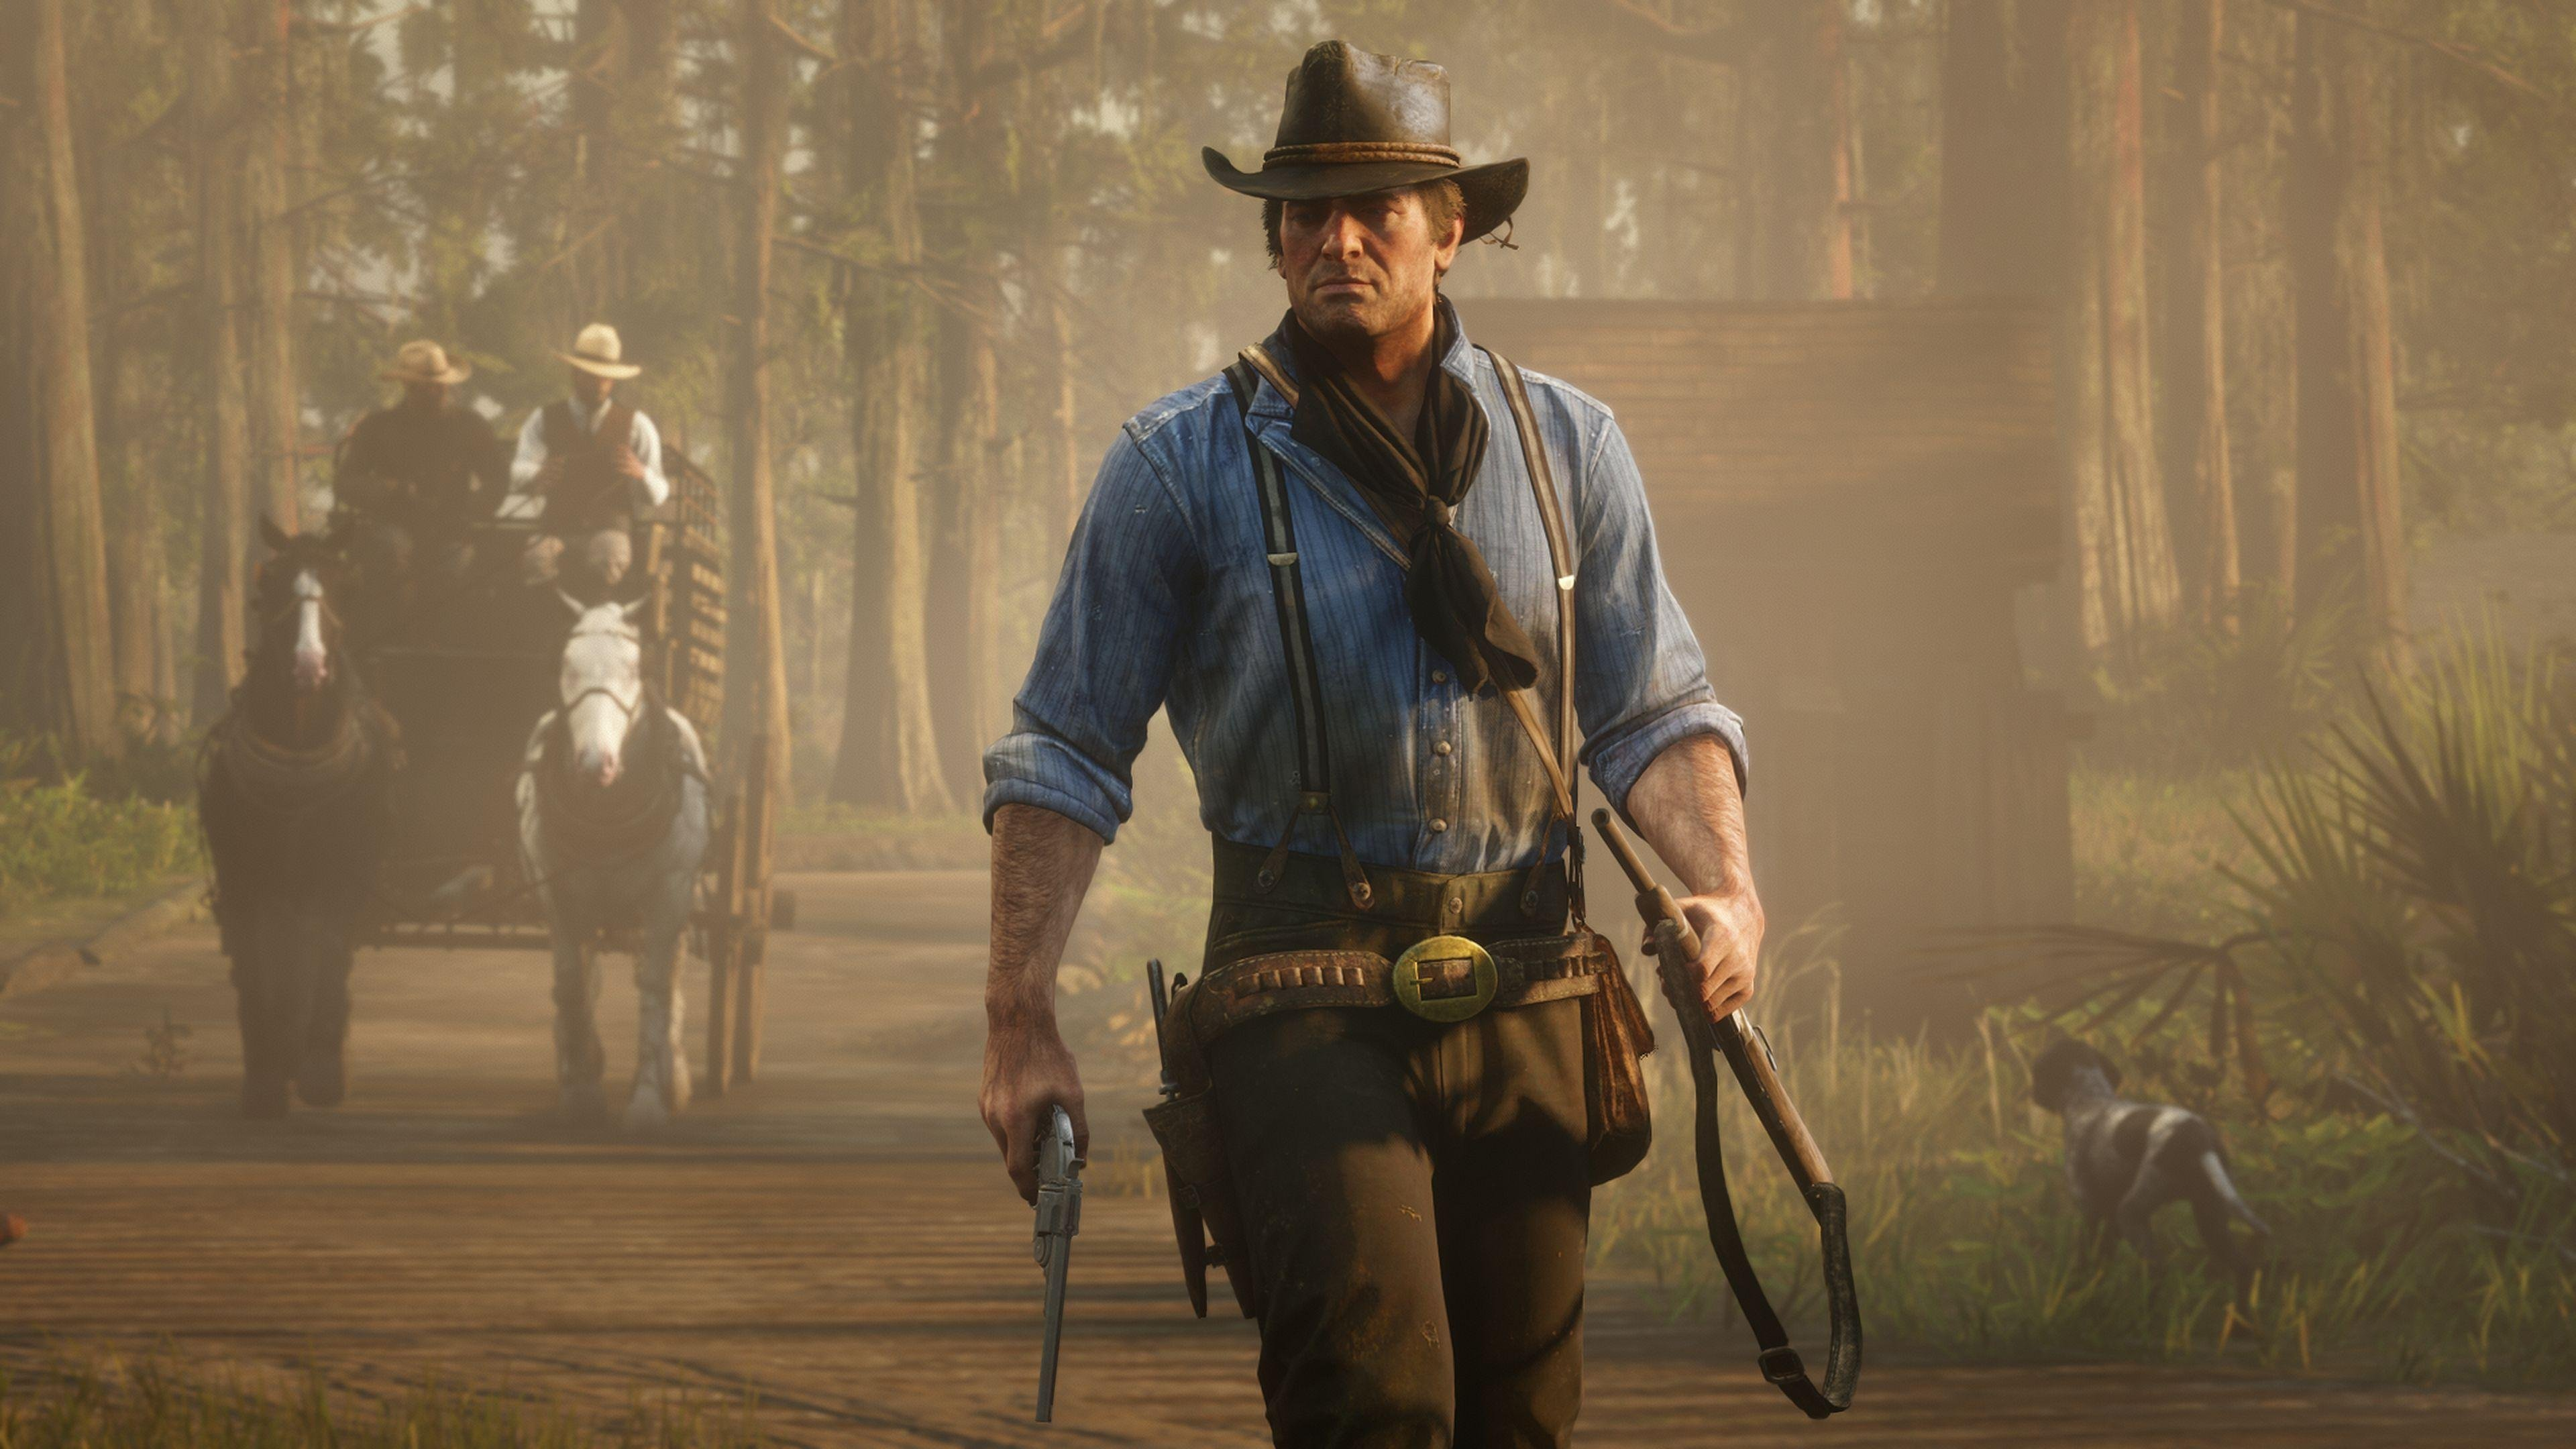 Red Dead Redemption 2 Will Have a Day One Patch, As You'd